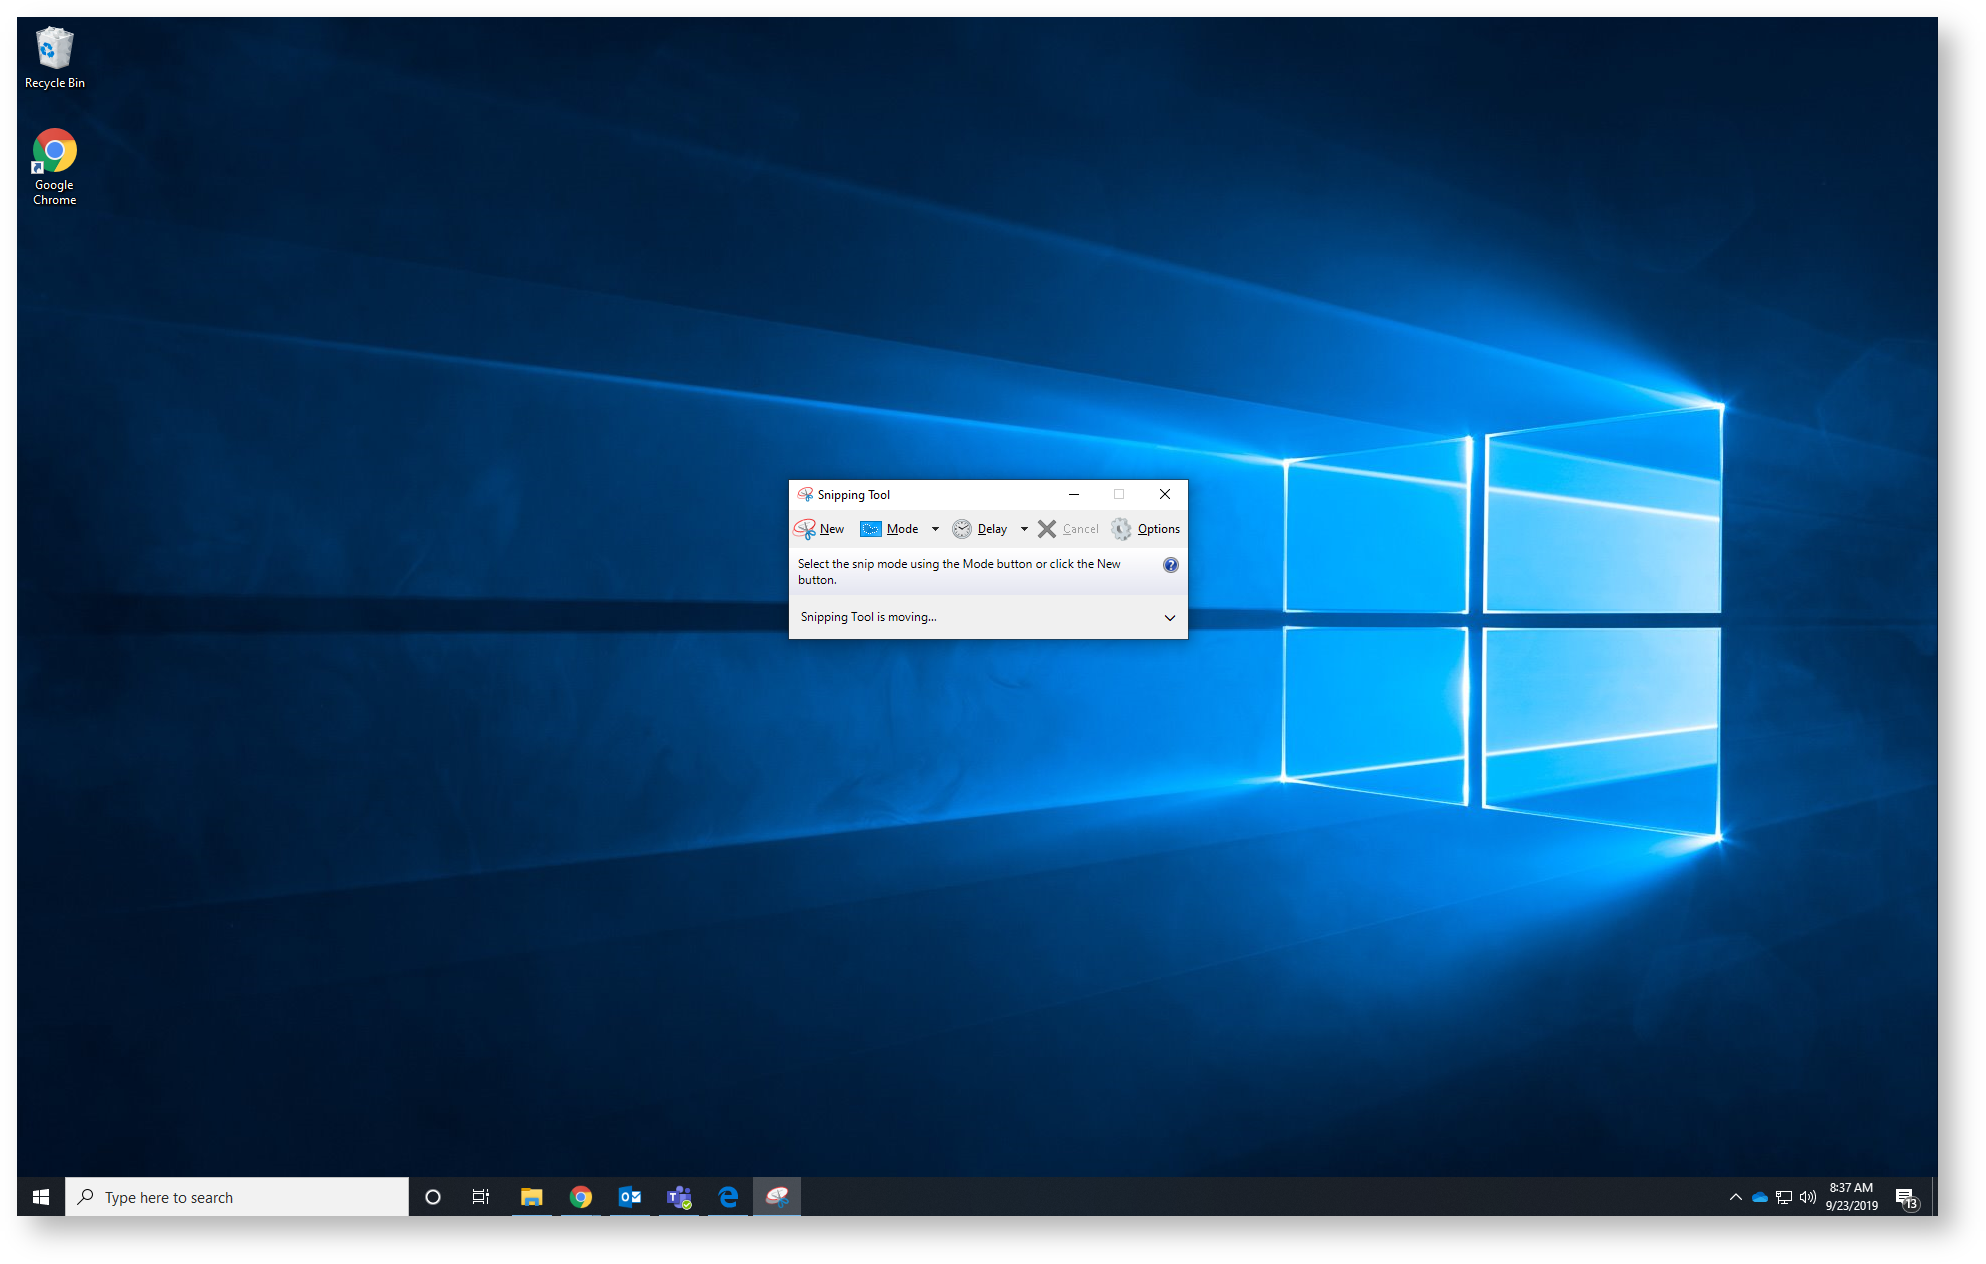 Screenshot of the Snipping tool on the Windows 10 Desktop